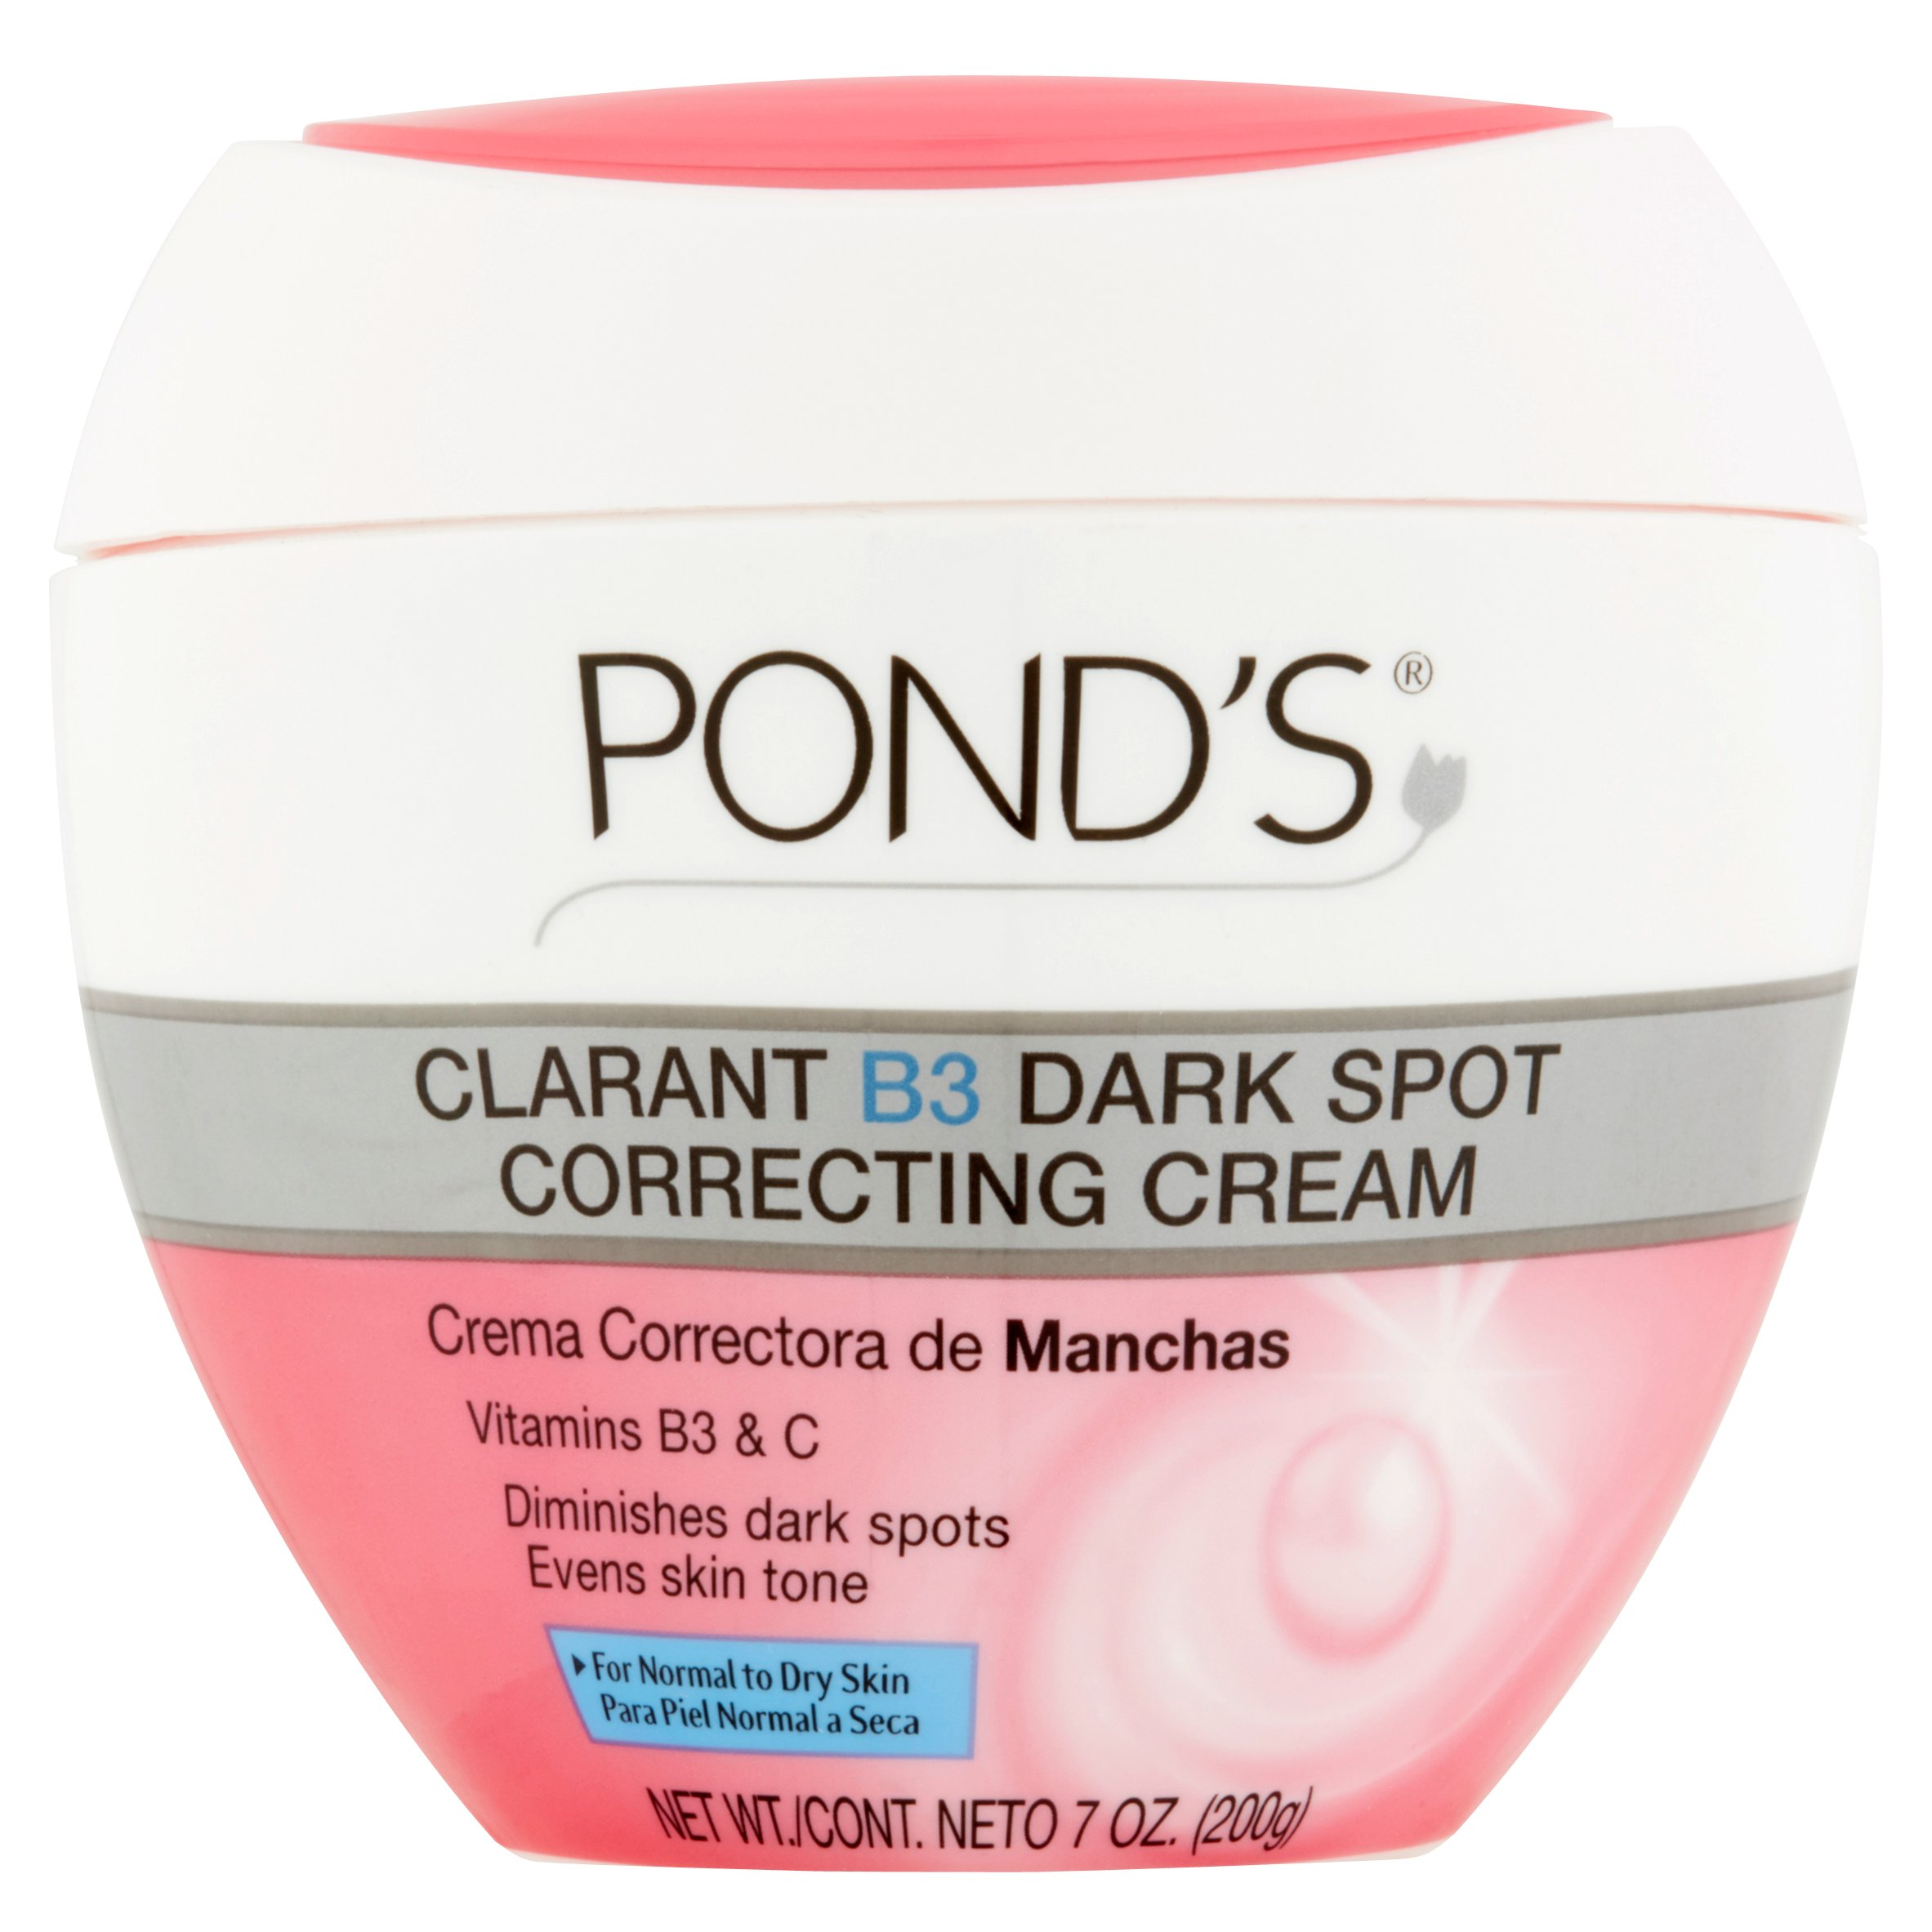 Pond's Clarant B3 Dark Spot Normal to Dry Skin Correcting Cream 7 oz